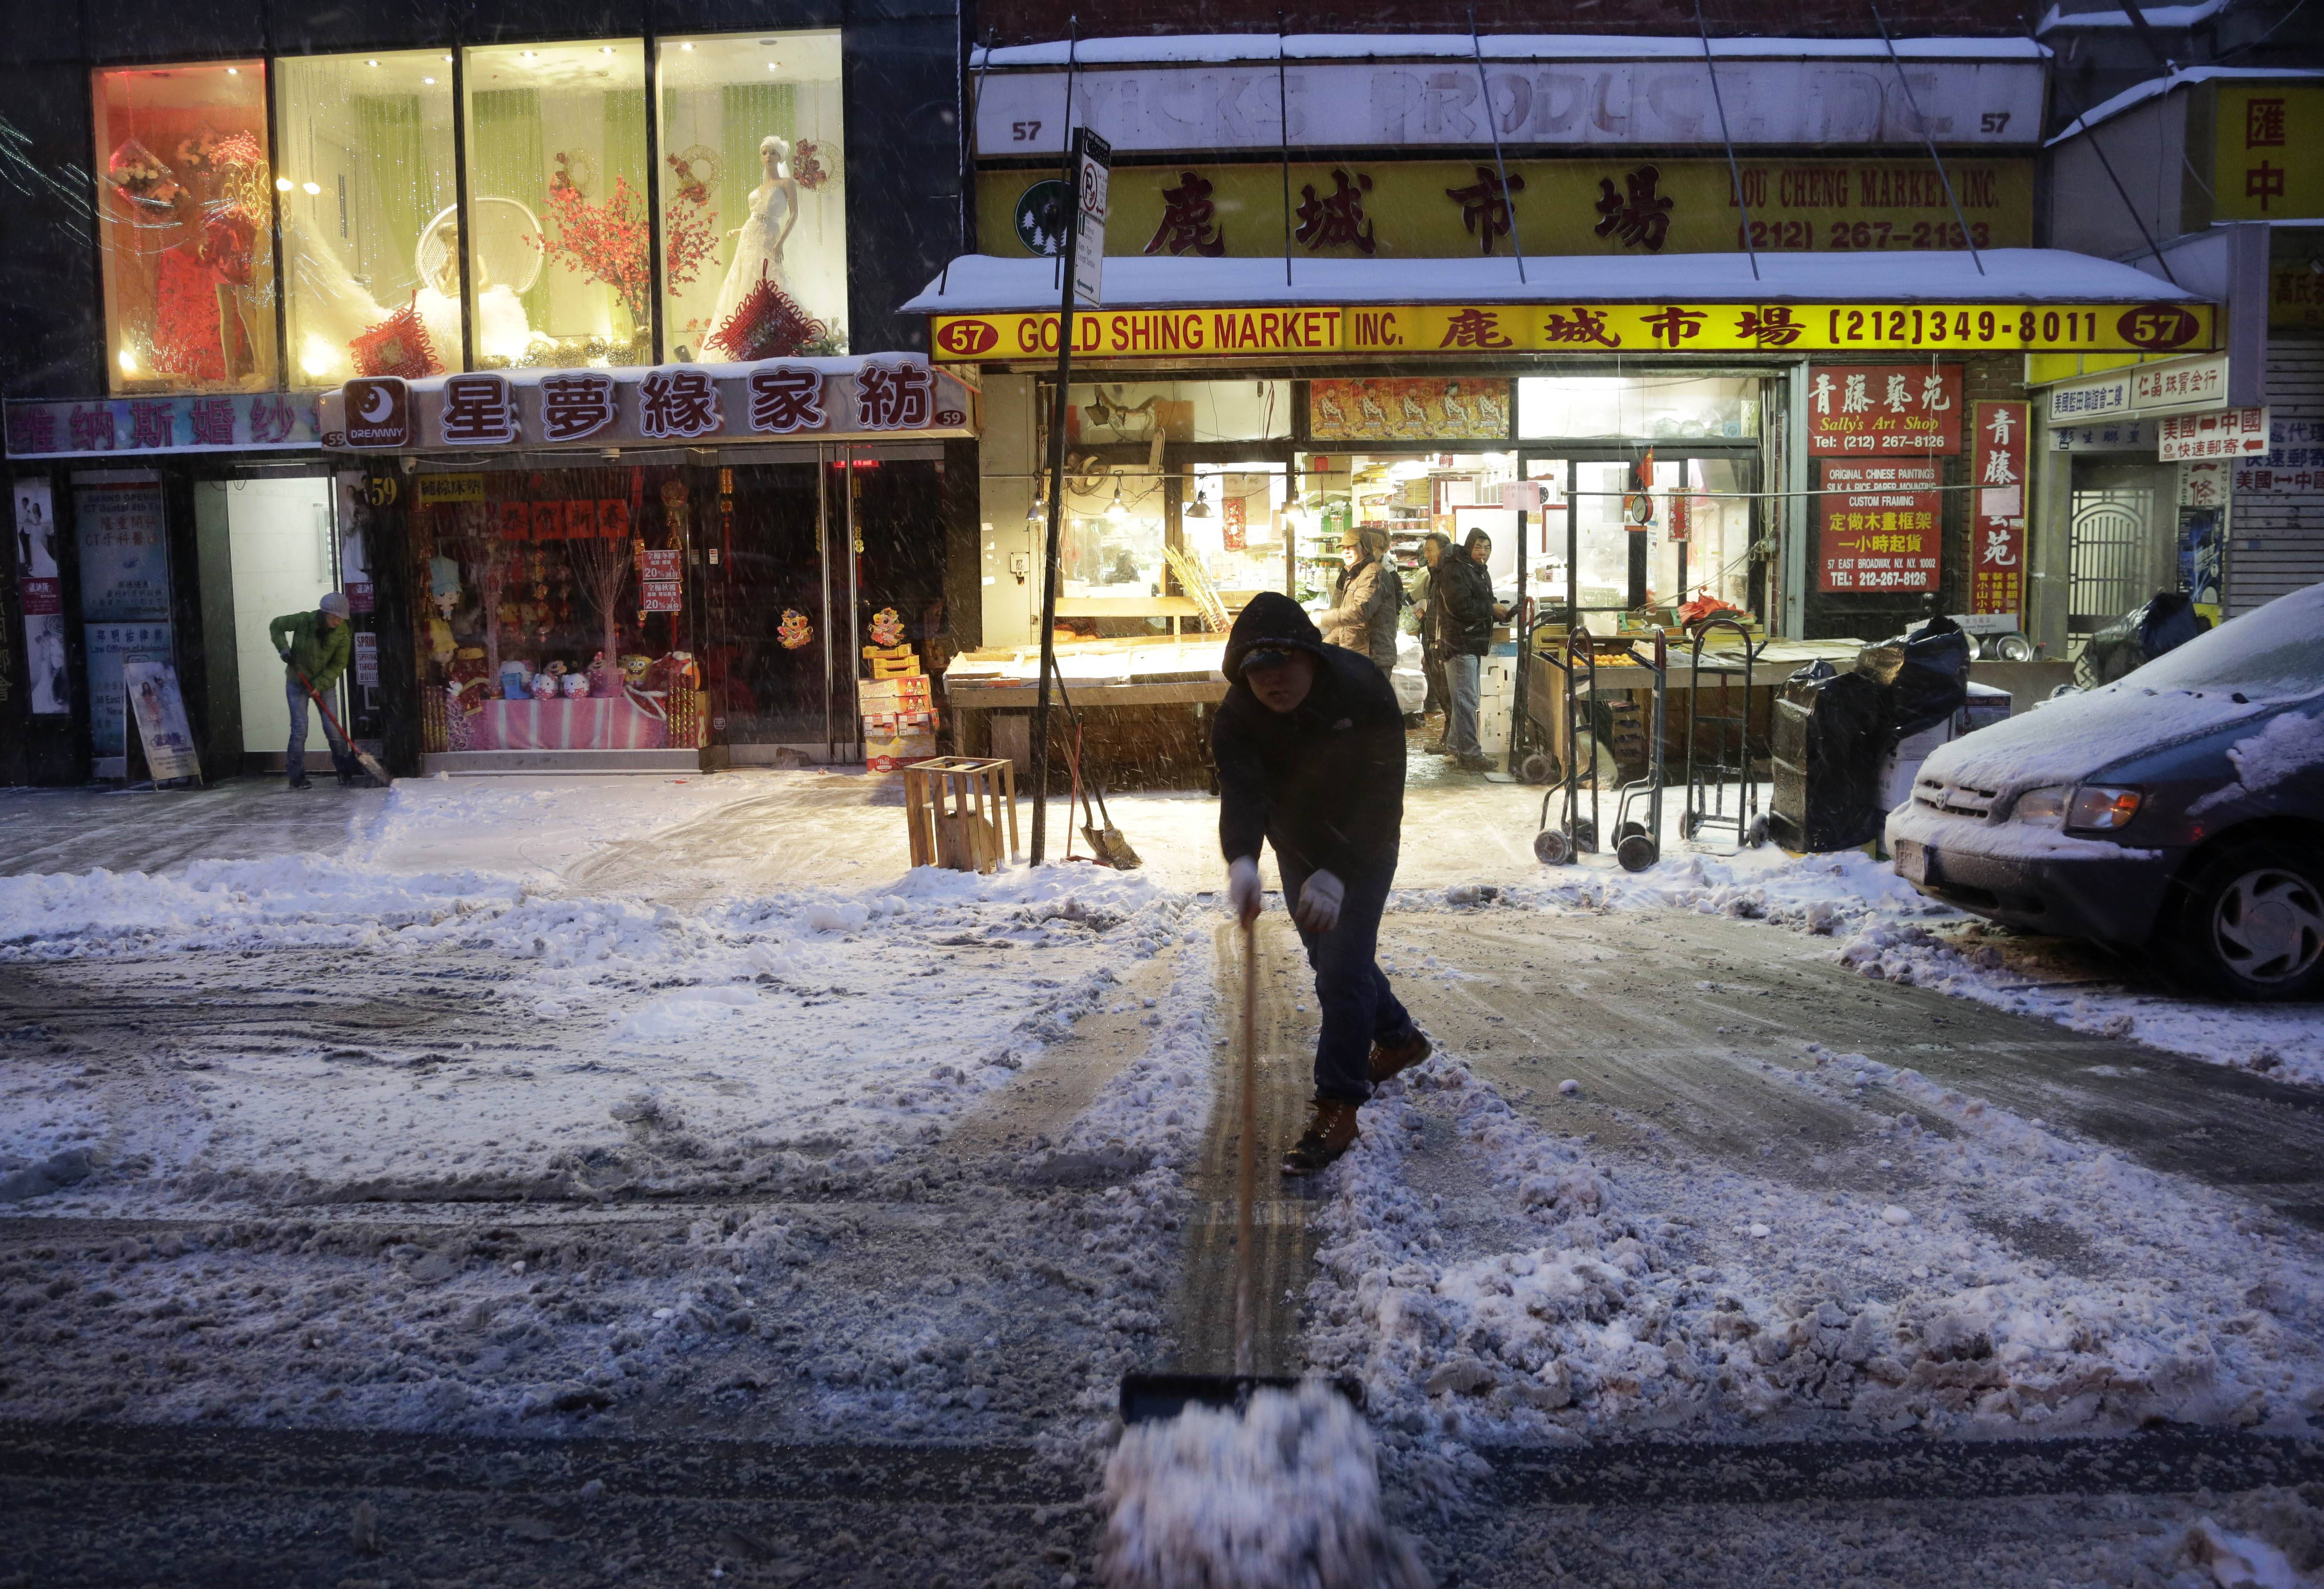 A man clears snow in front of the Gold Shing Market in the Chinatown neighborhood of New York, Thursday, Feb. 13, 2014. Snow and sleet are falling on the East Coast from North Carolina to New England a day after sleet, snow and ice bombarded the Southeast.